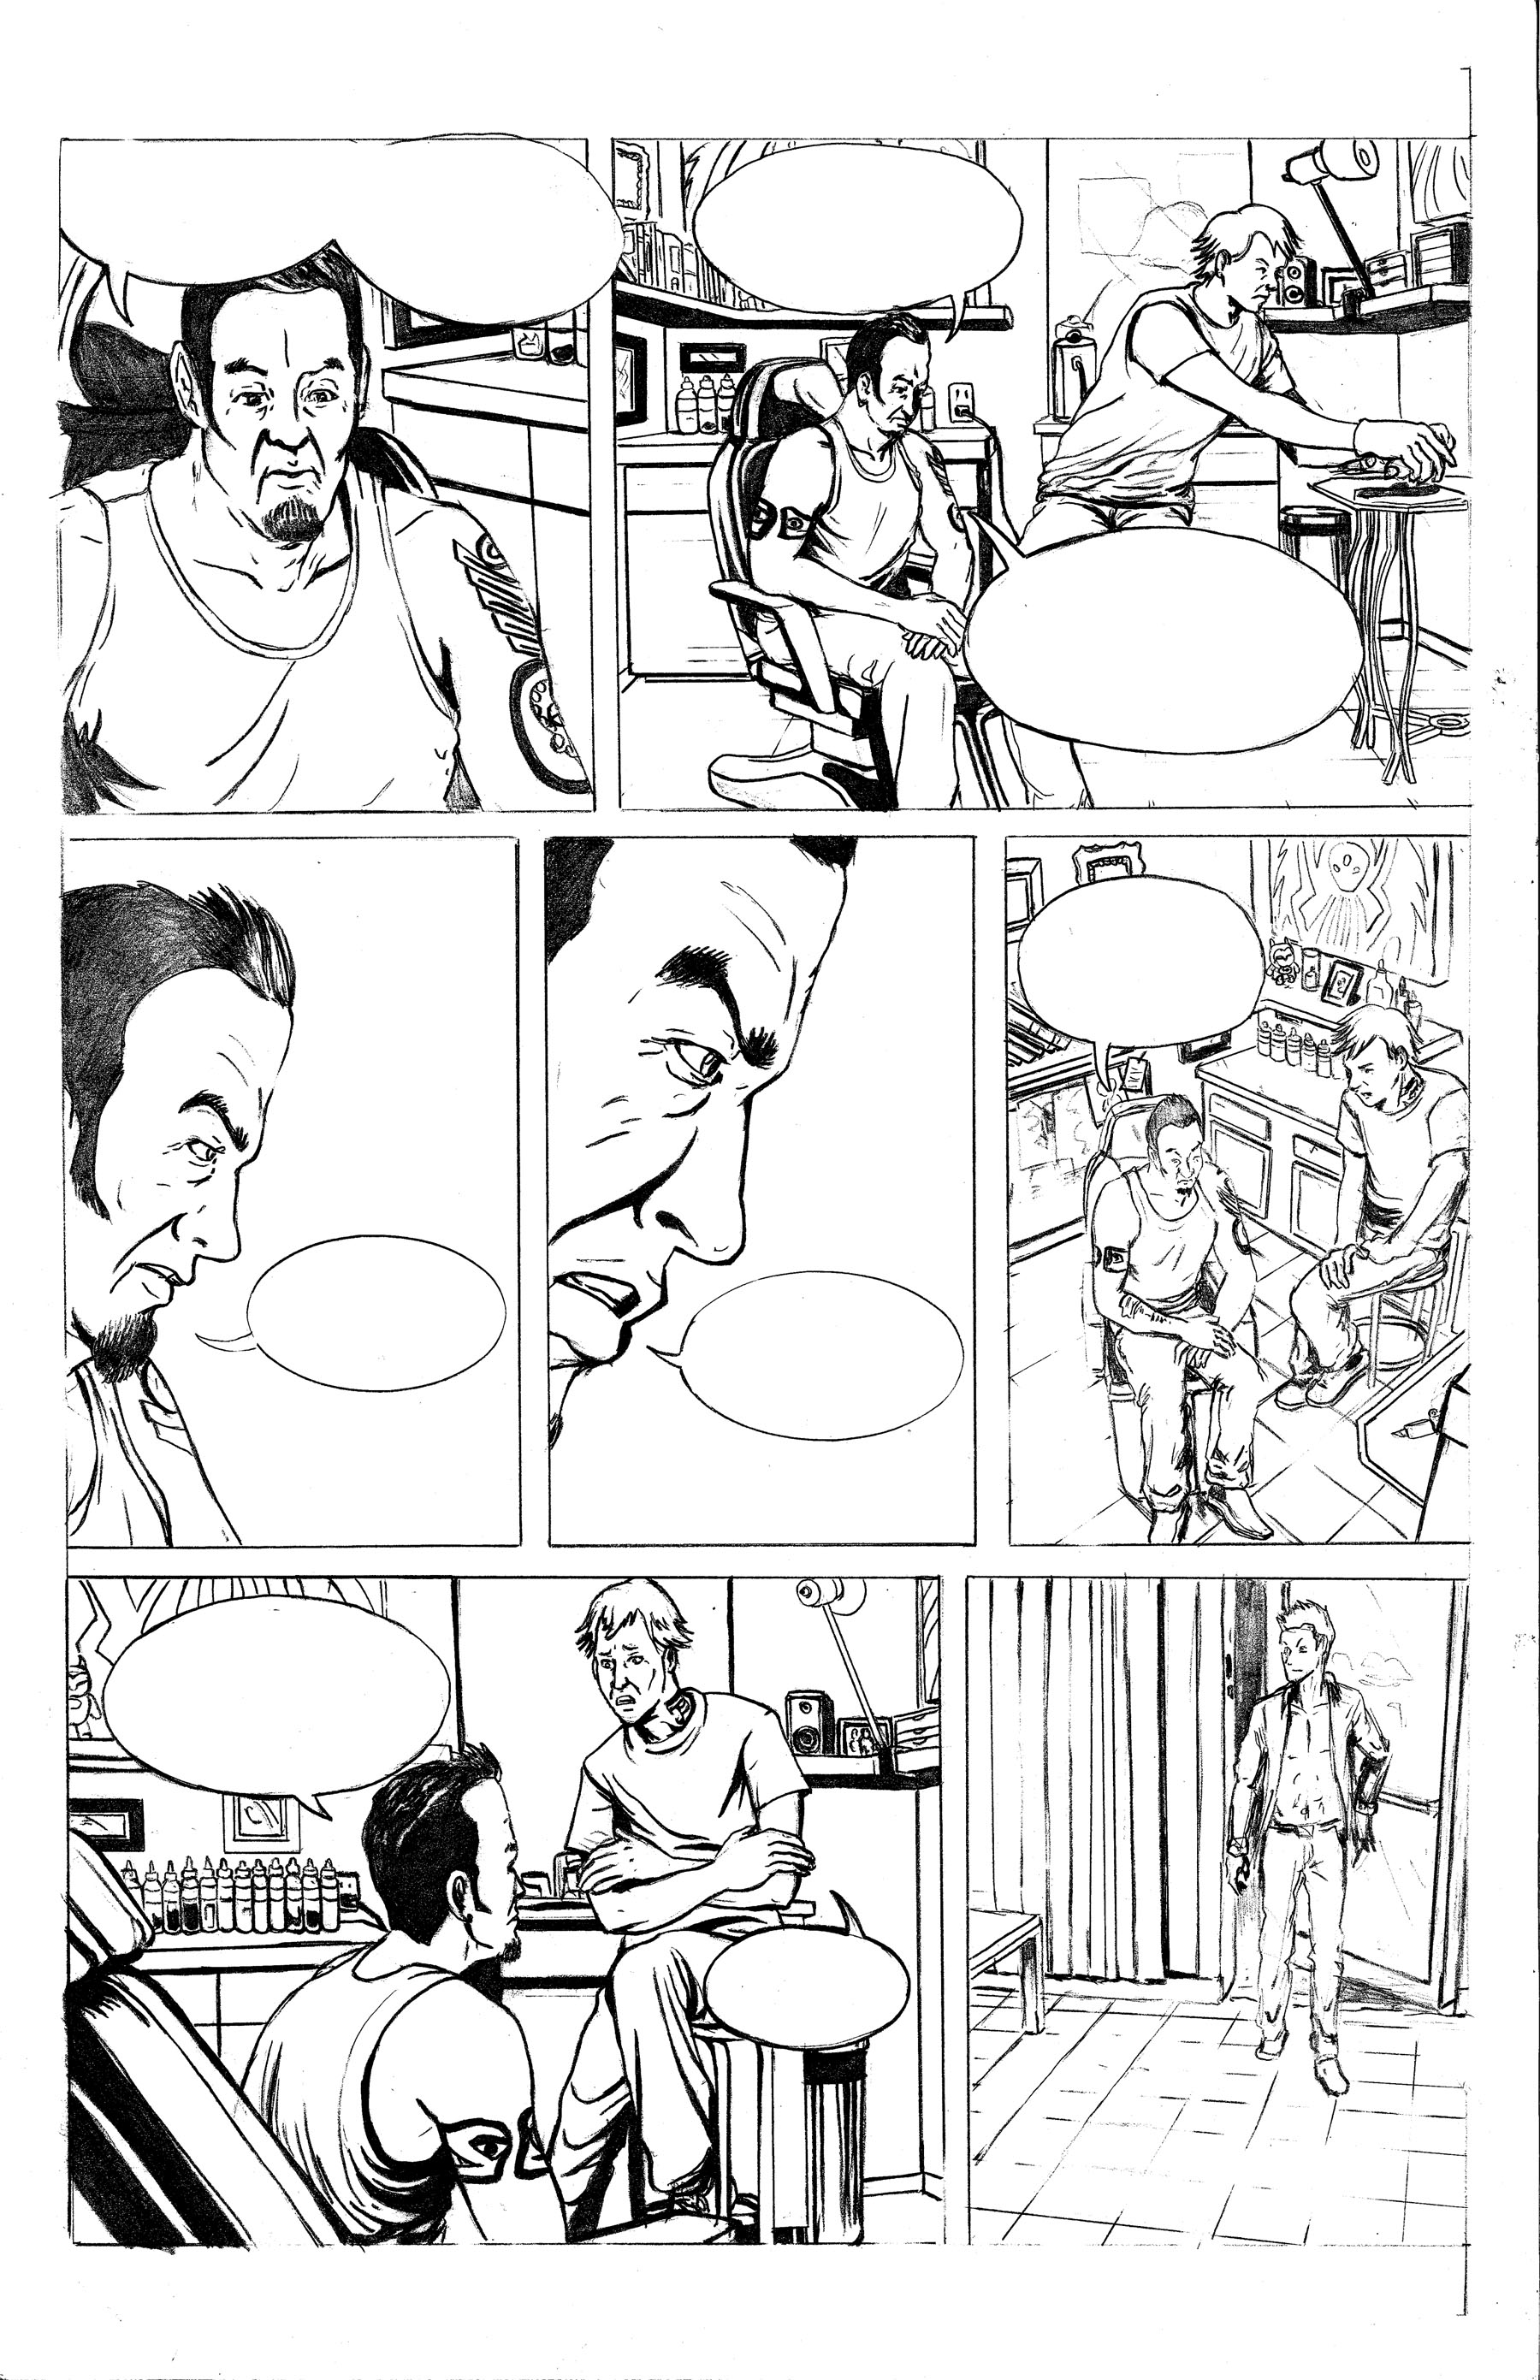 Tattoo Parlor Attack Page 2 Pencils.jpg